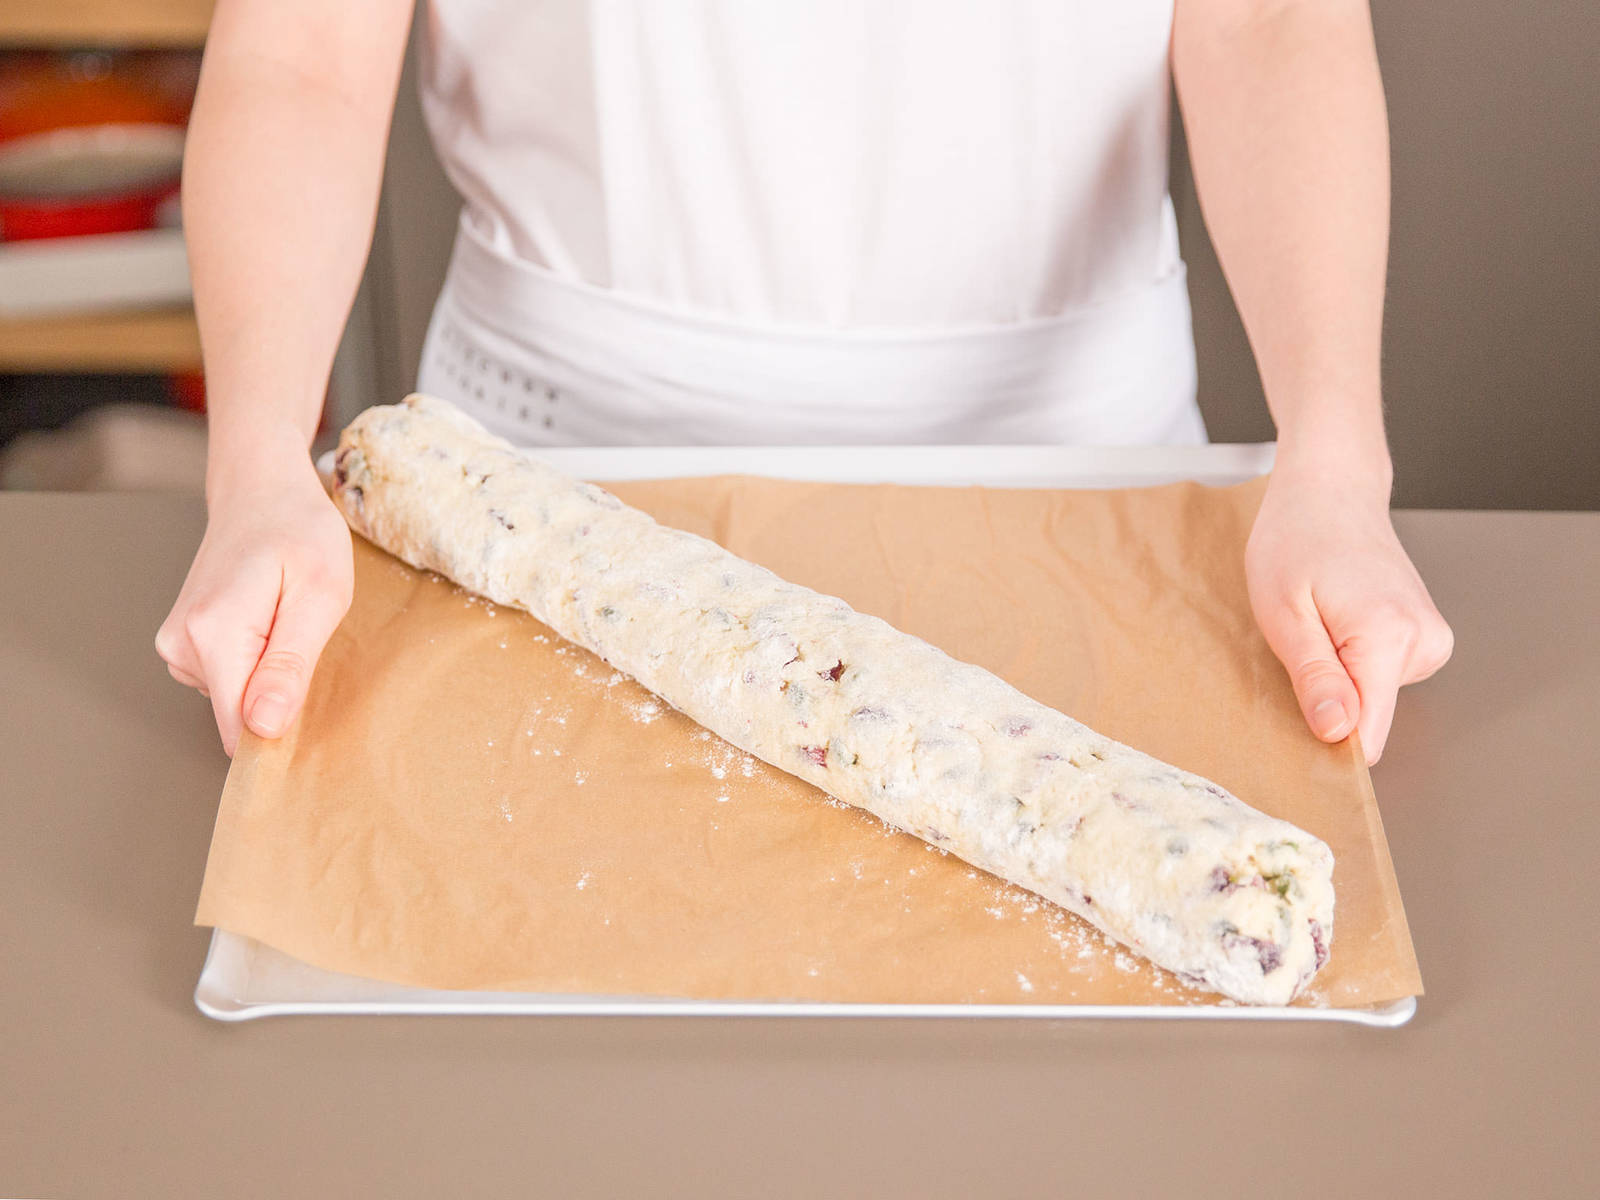 Transfer the log onto a lined baking tray and bake in a preheated oven at 200°C/ 390°F for approx. 20 - 30 min. until golden. Allow to cool for 30 min.